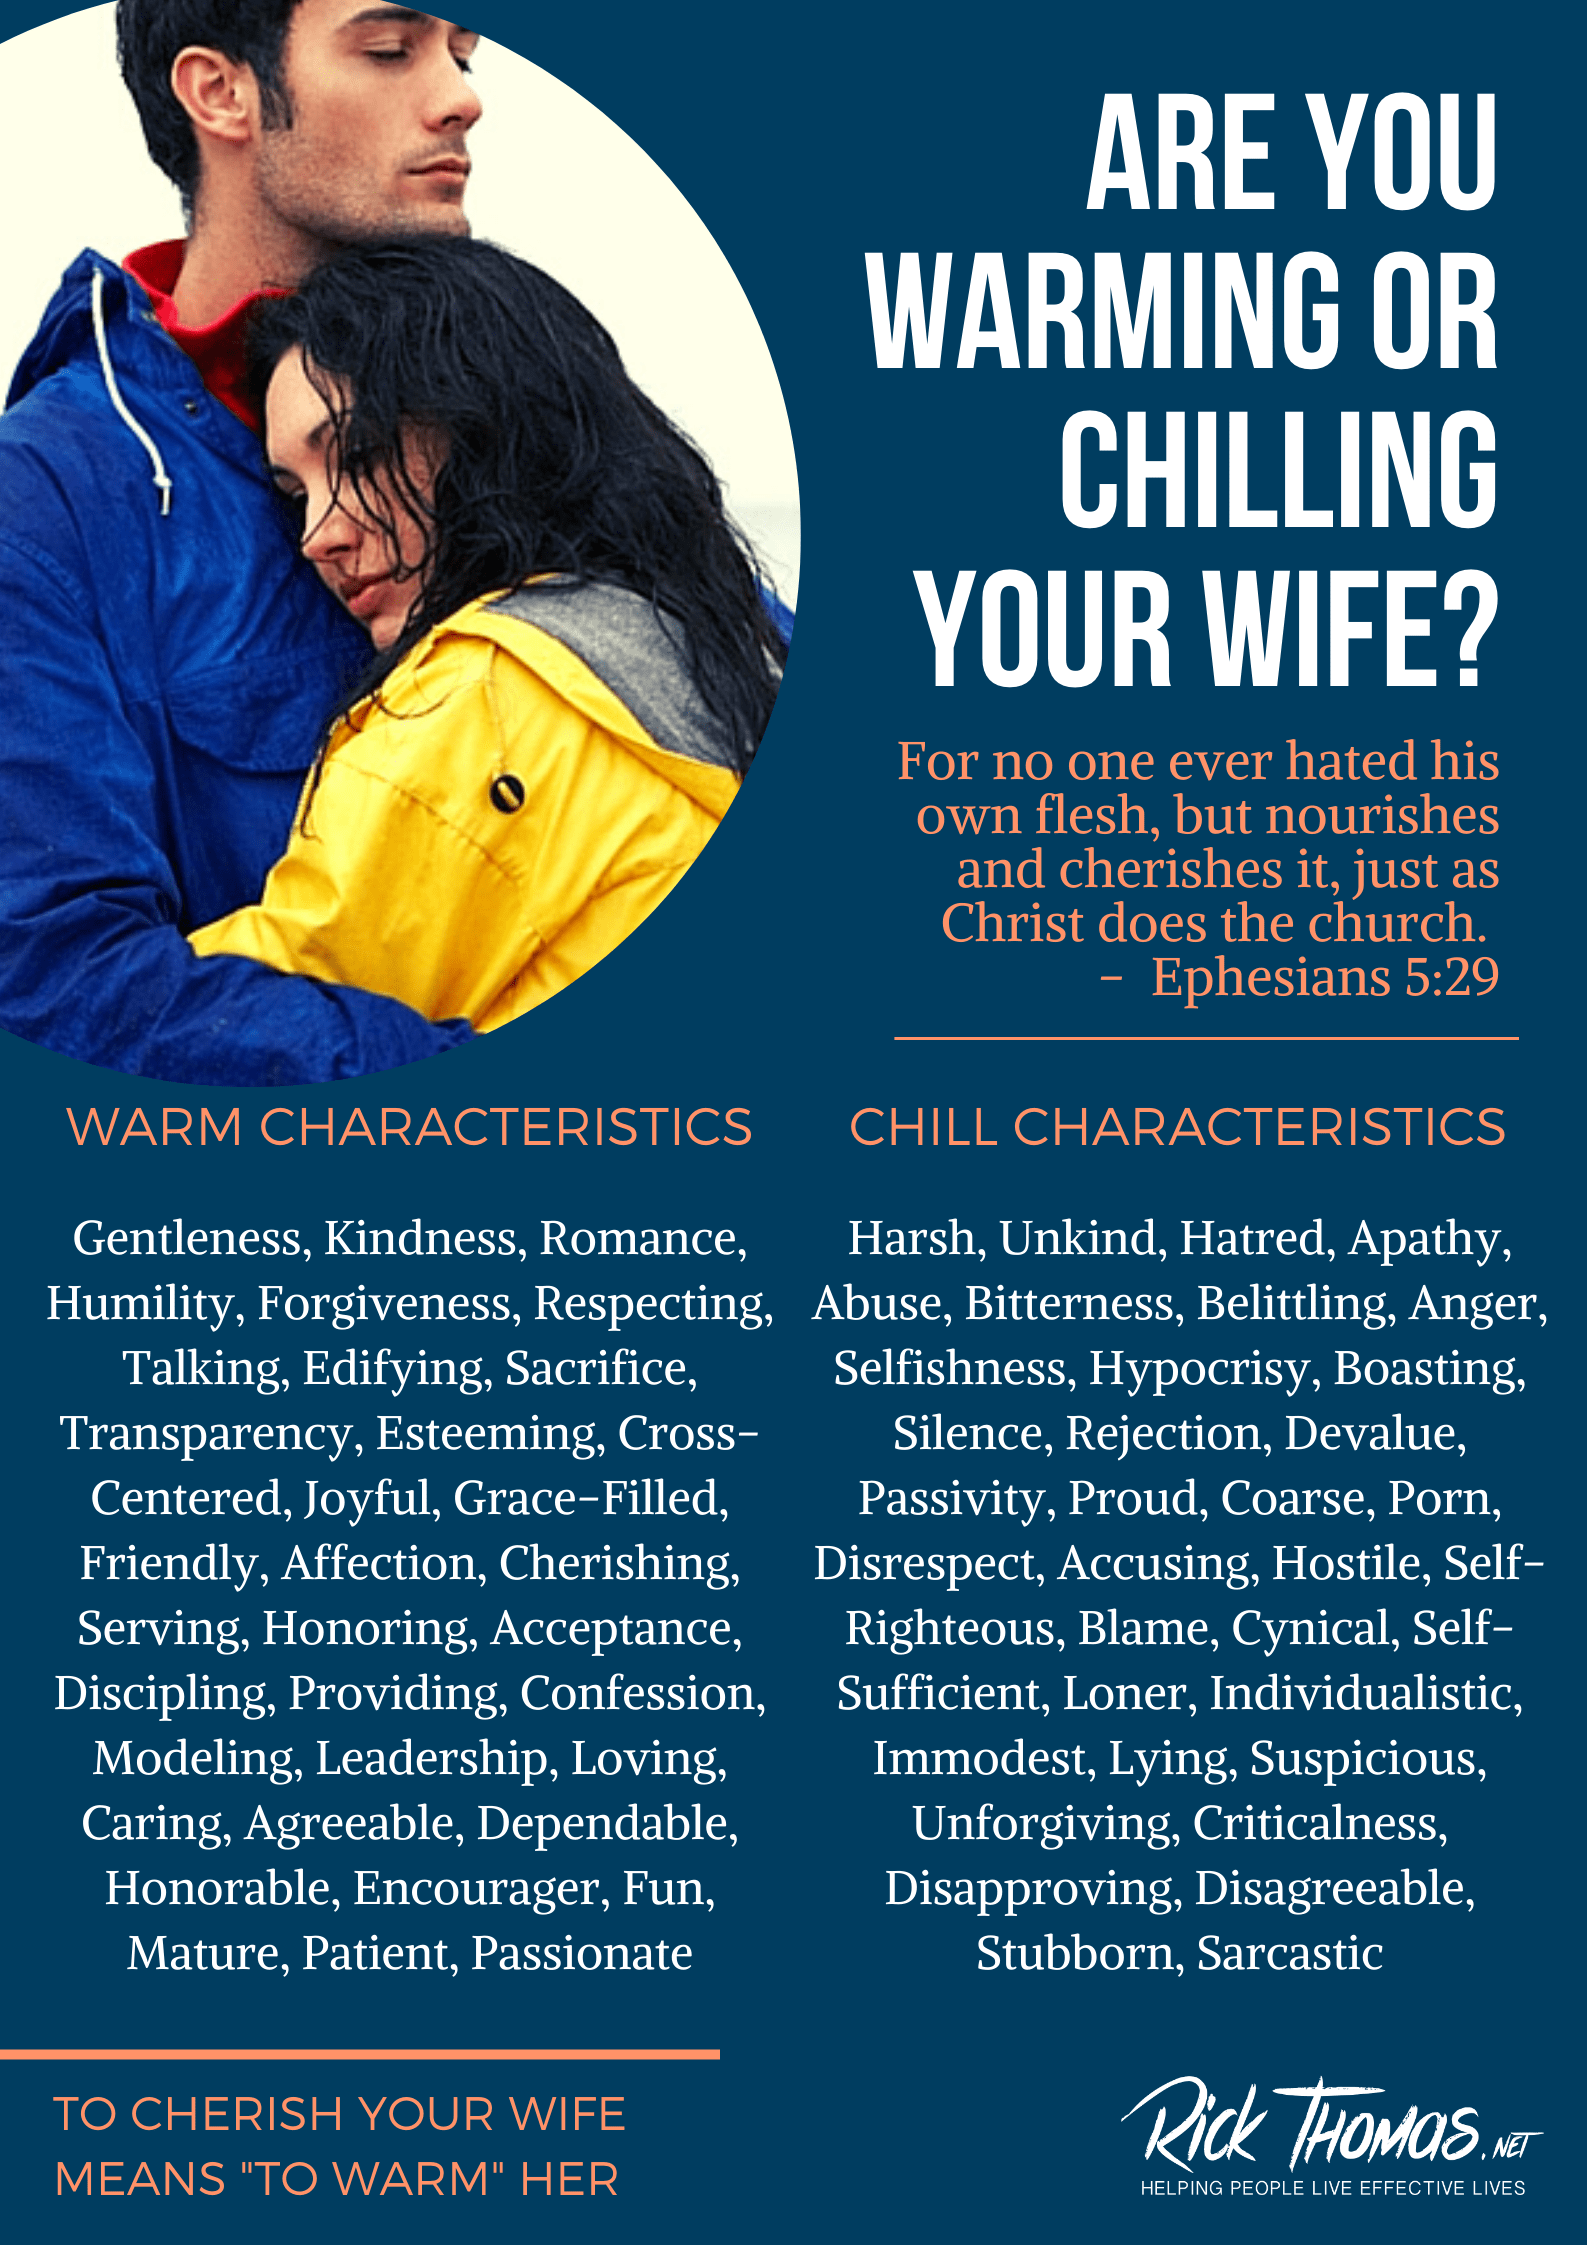 Are you warming or chilling your wife?